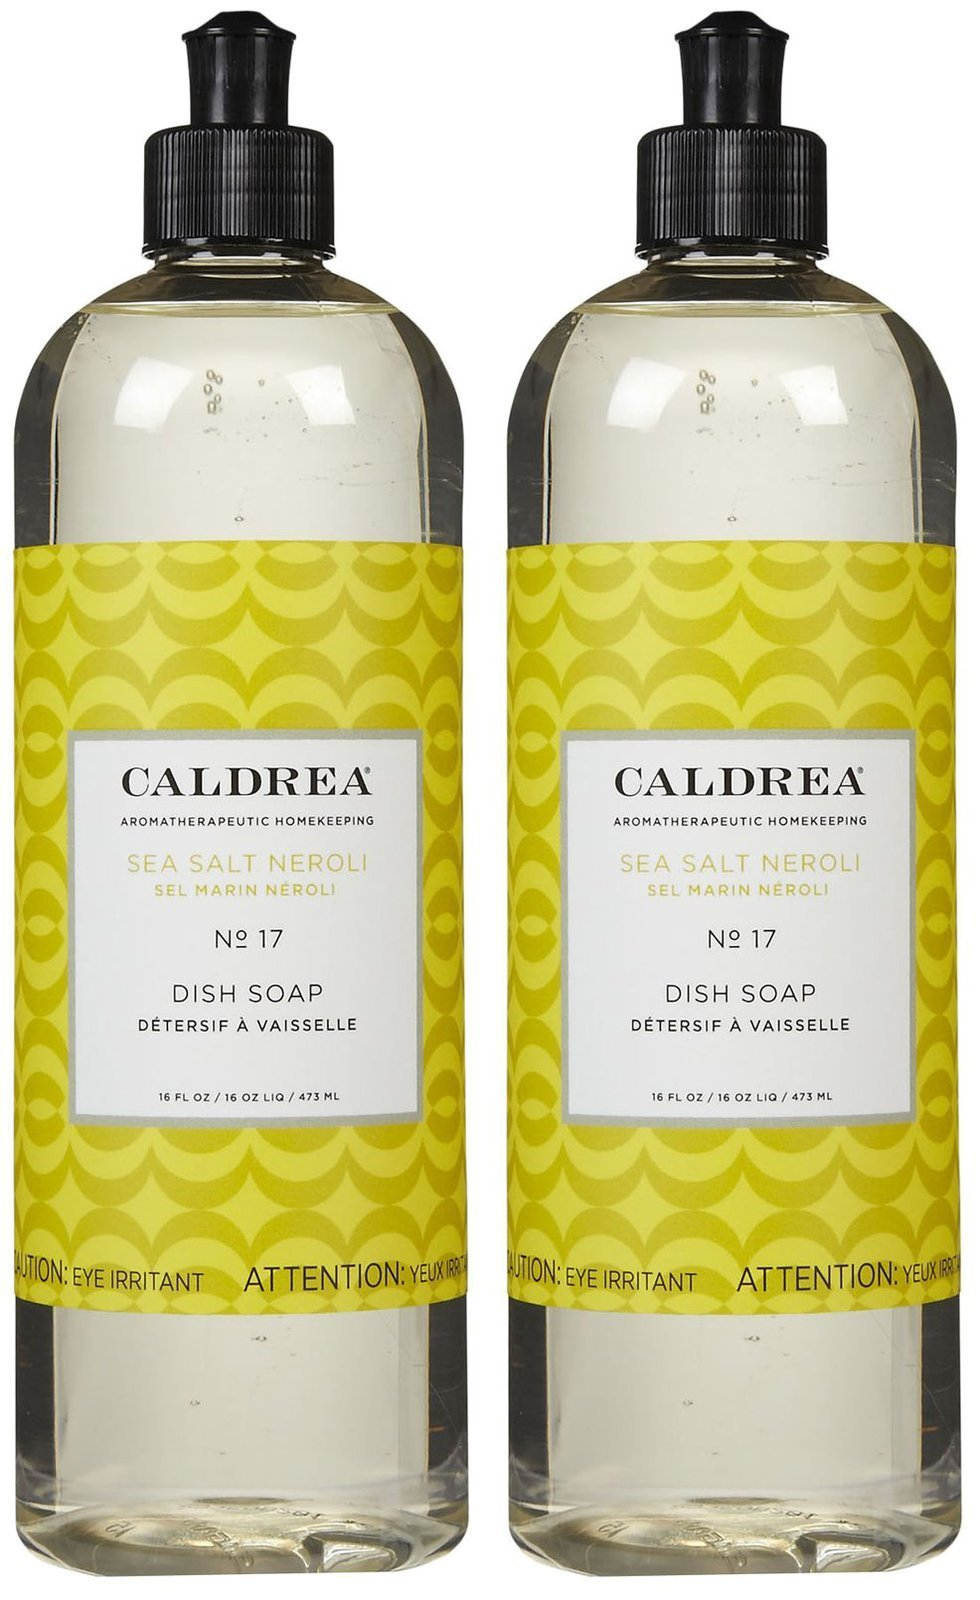 Caldrea Liquid Dish Soap - 16 oz - Sea Salt Neroli - 2 pk